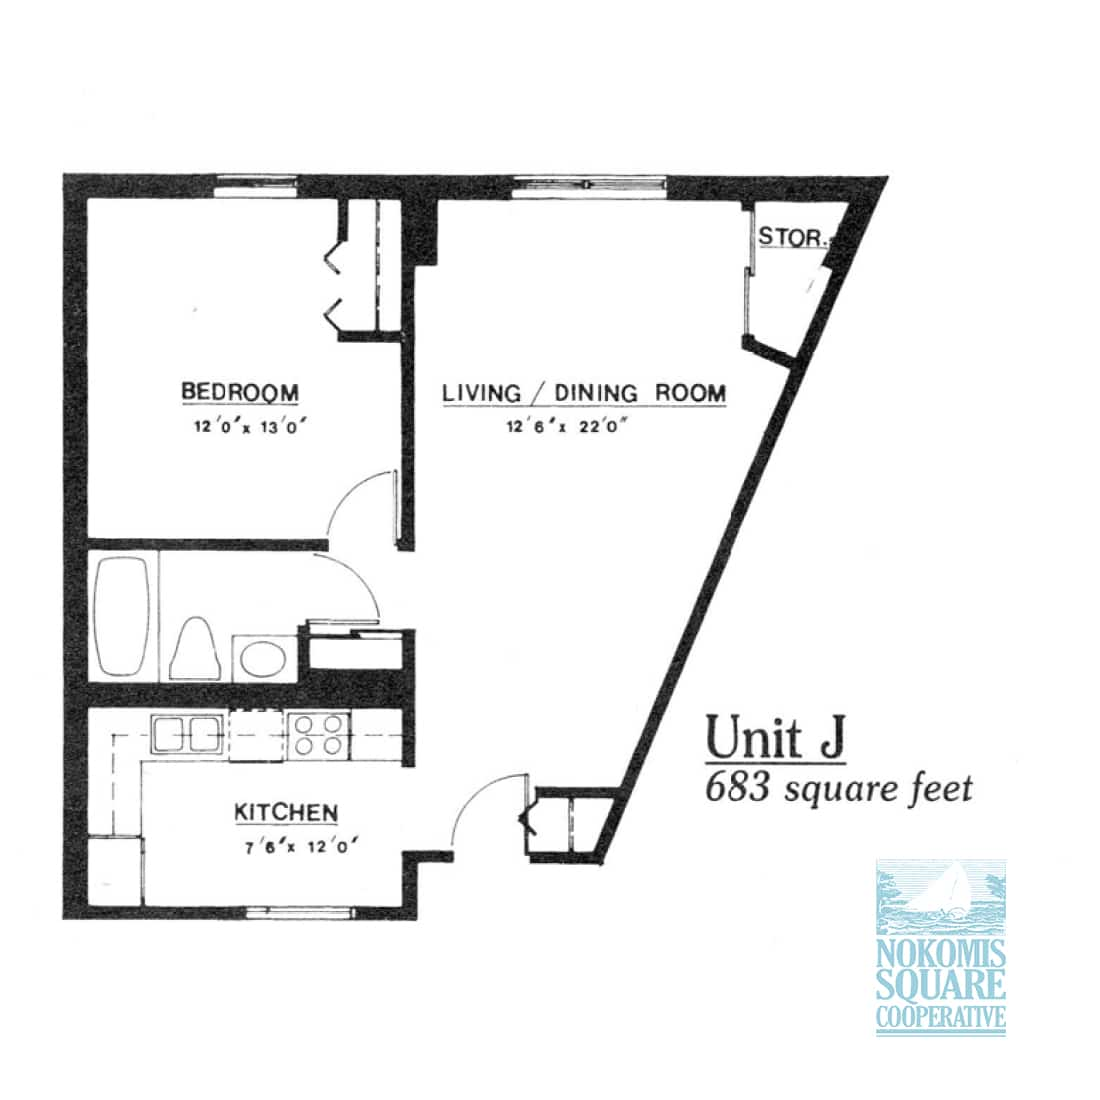 1 br Floorplan Unit J - Nokomis Square Senior Cooperative